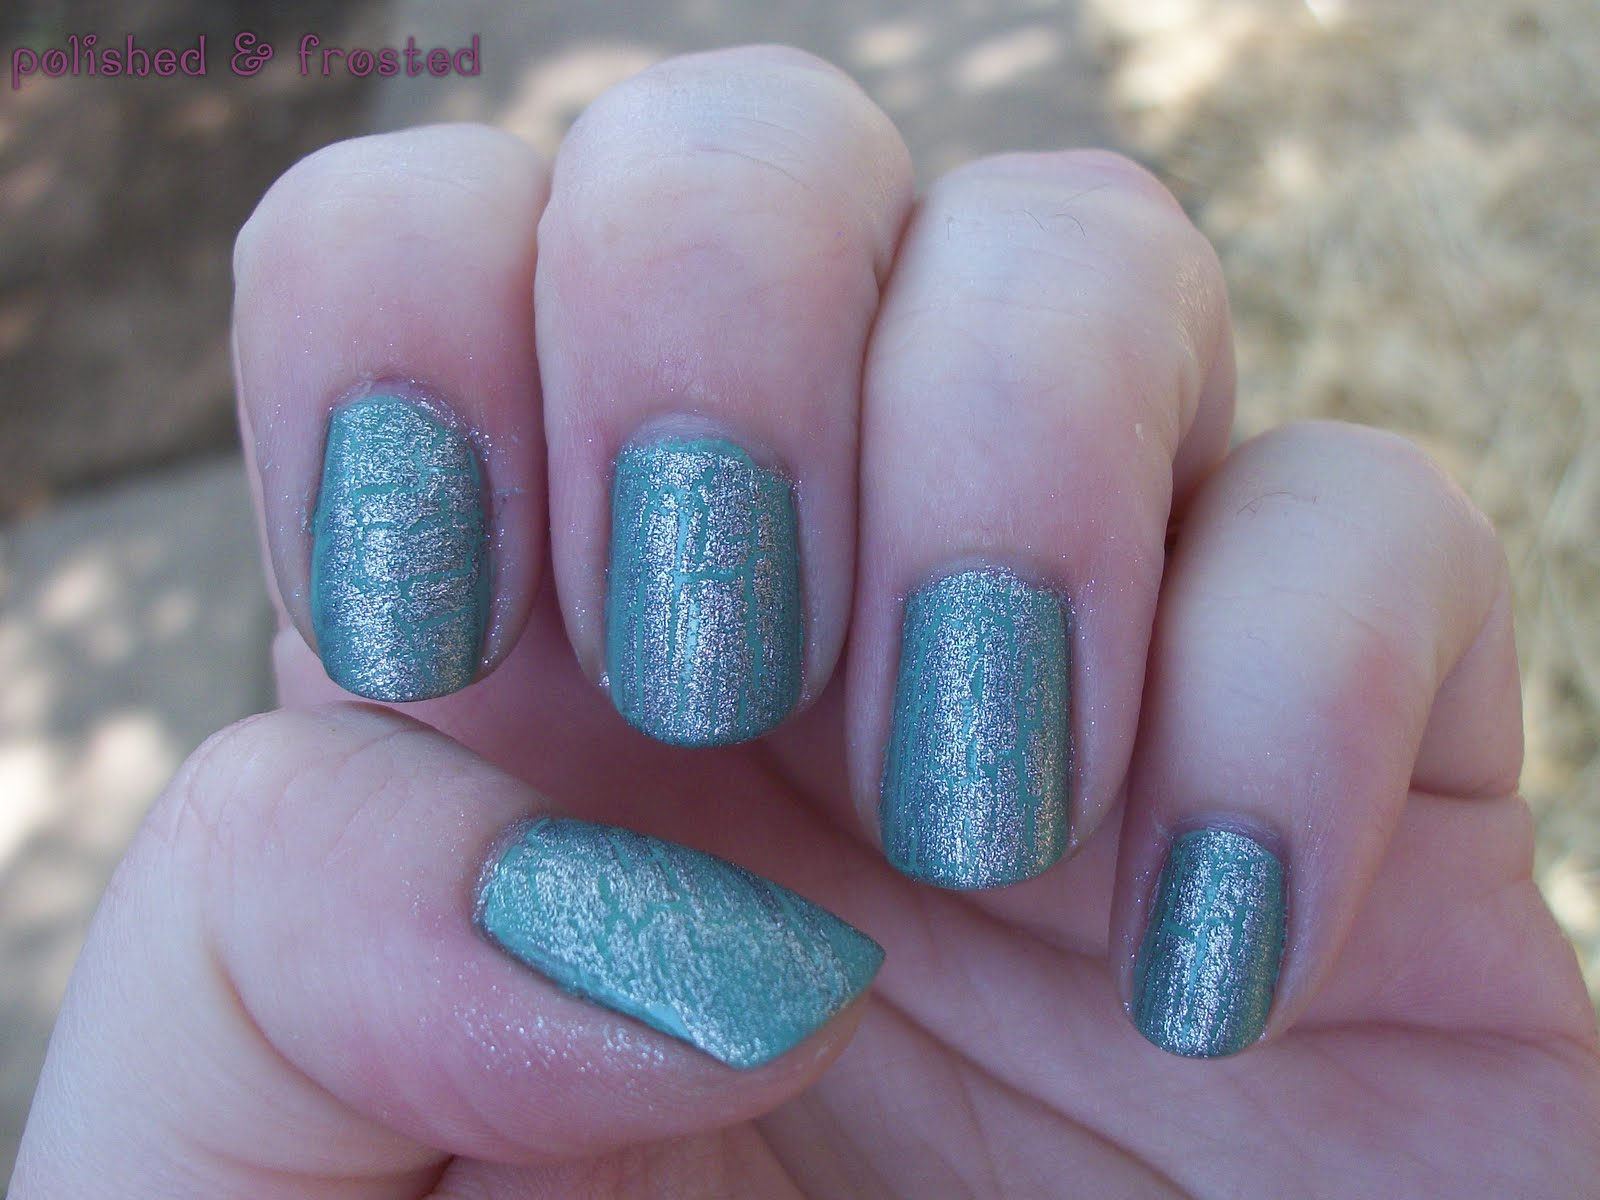 polished & frosted: OPI Silver Shatter